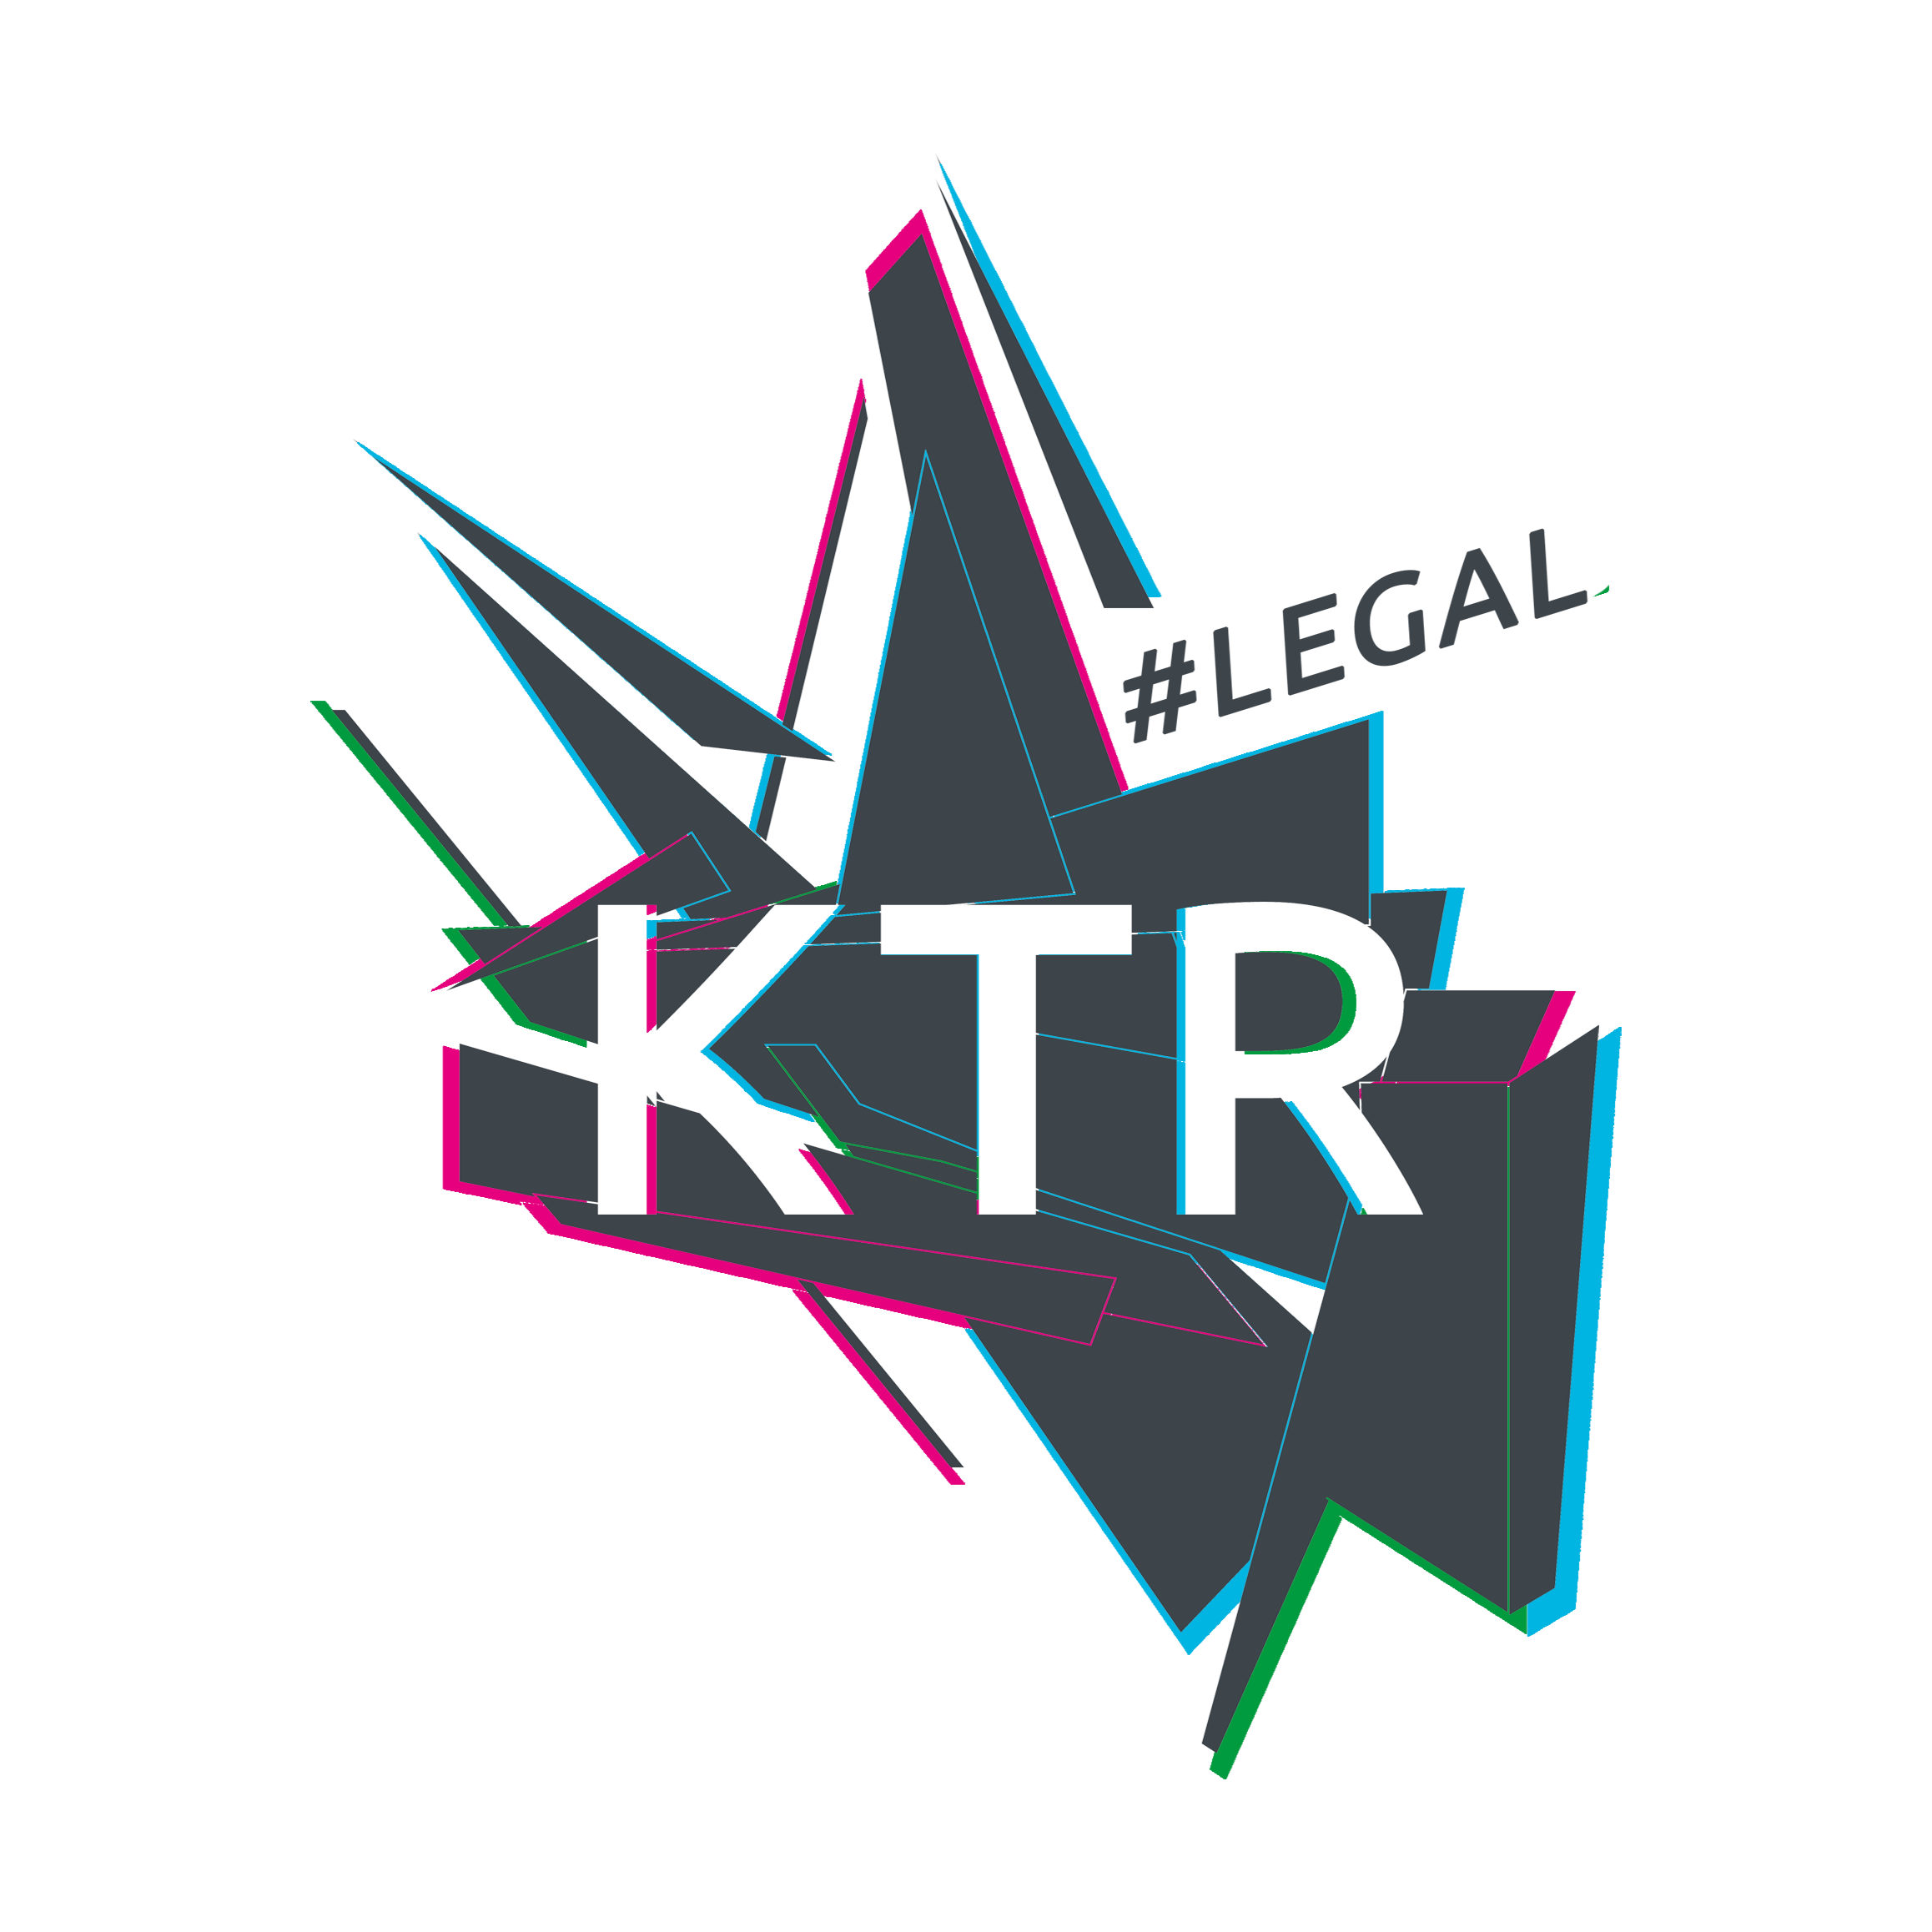 KTR_legal_logo